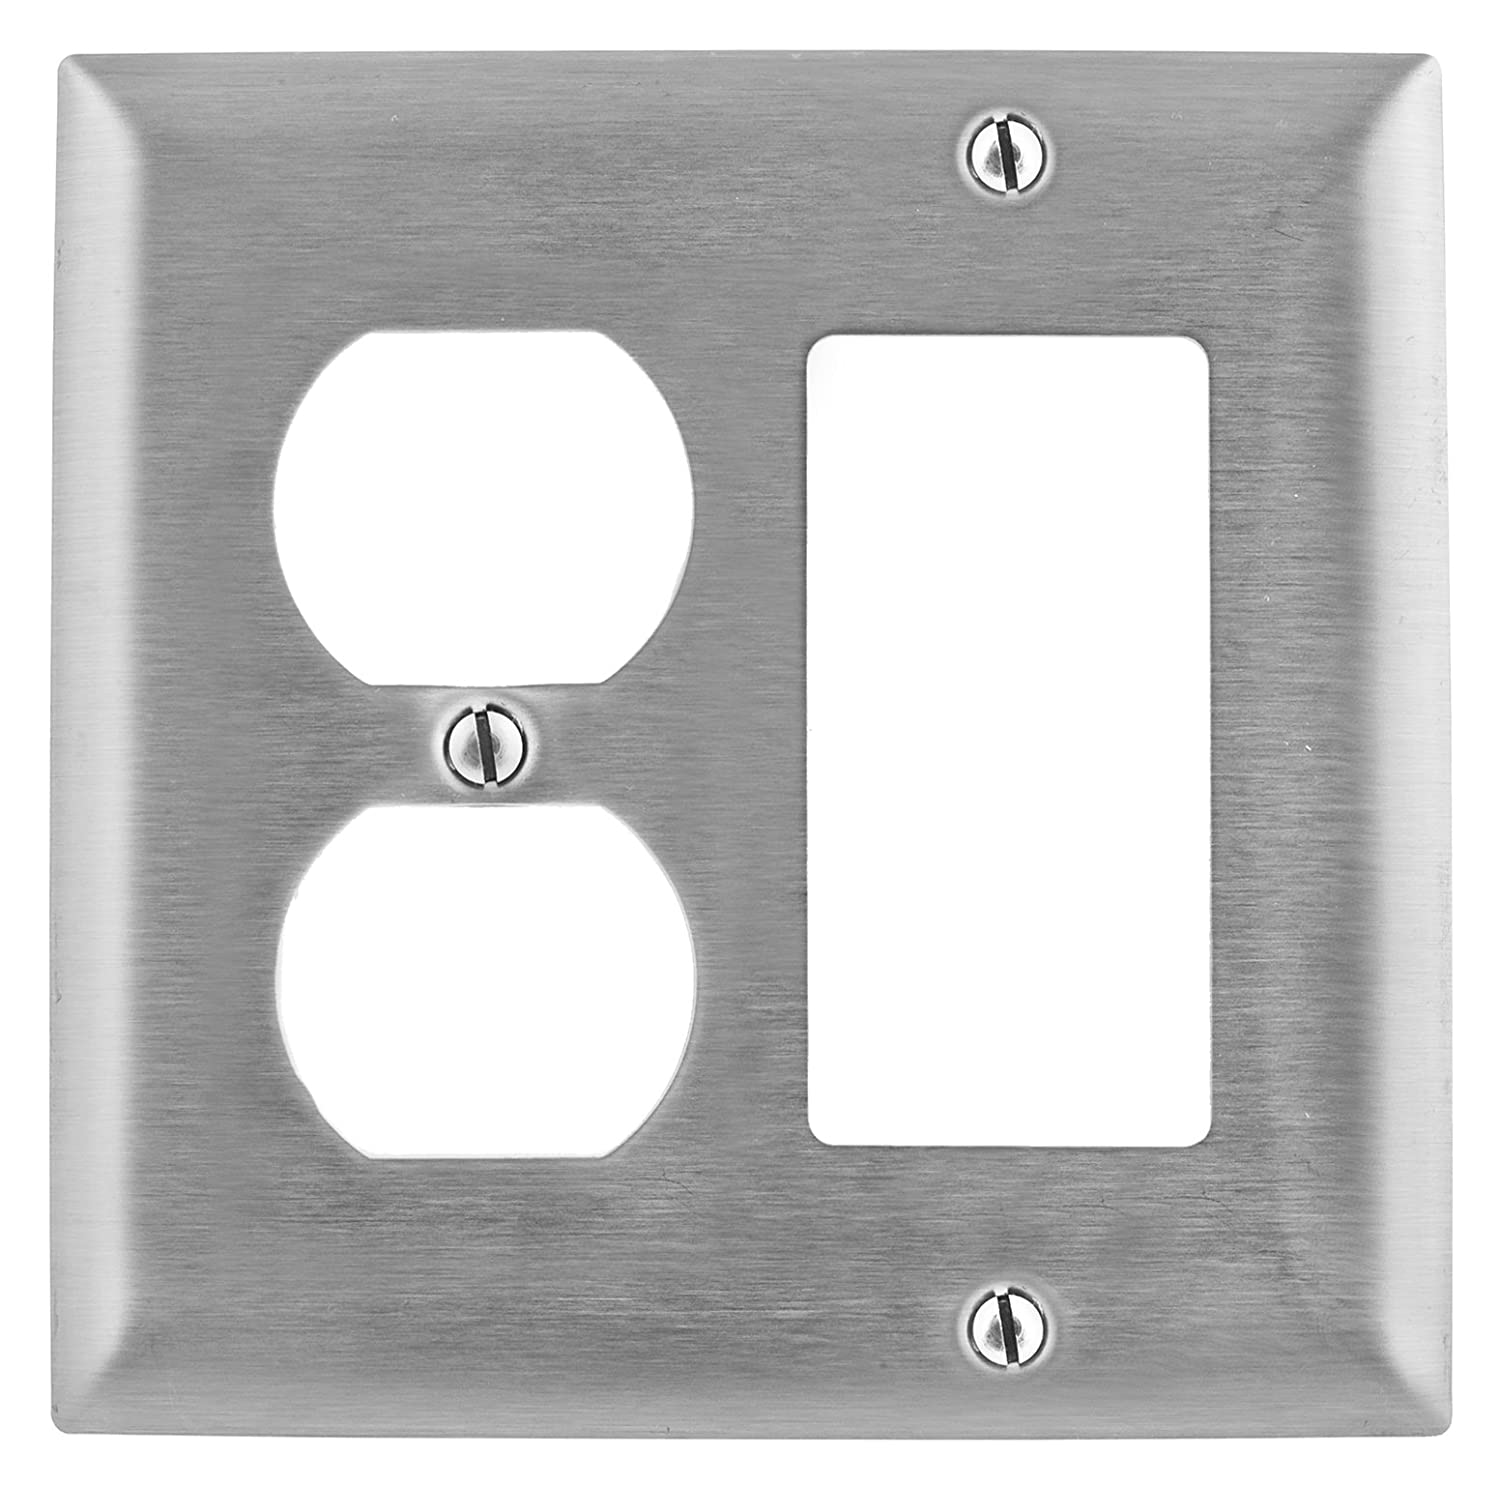 Standard Size 4-Gang With Removable White Protective Film Bryant Electric SS326 Metallic Wallplate StainlessSteel 302//304 3 Toggle 1 Decorator//GFCI Openings